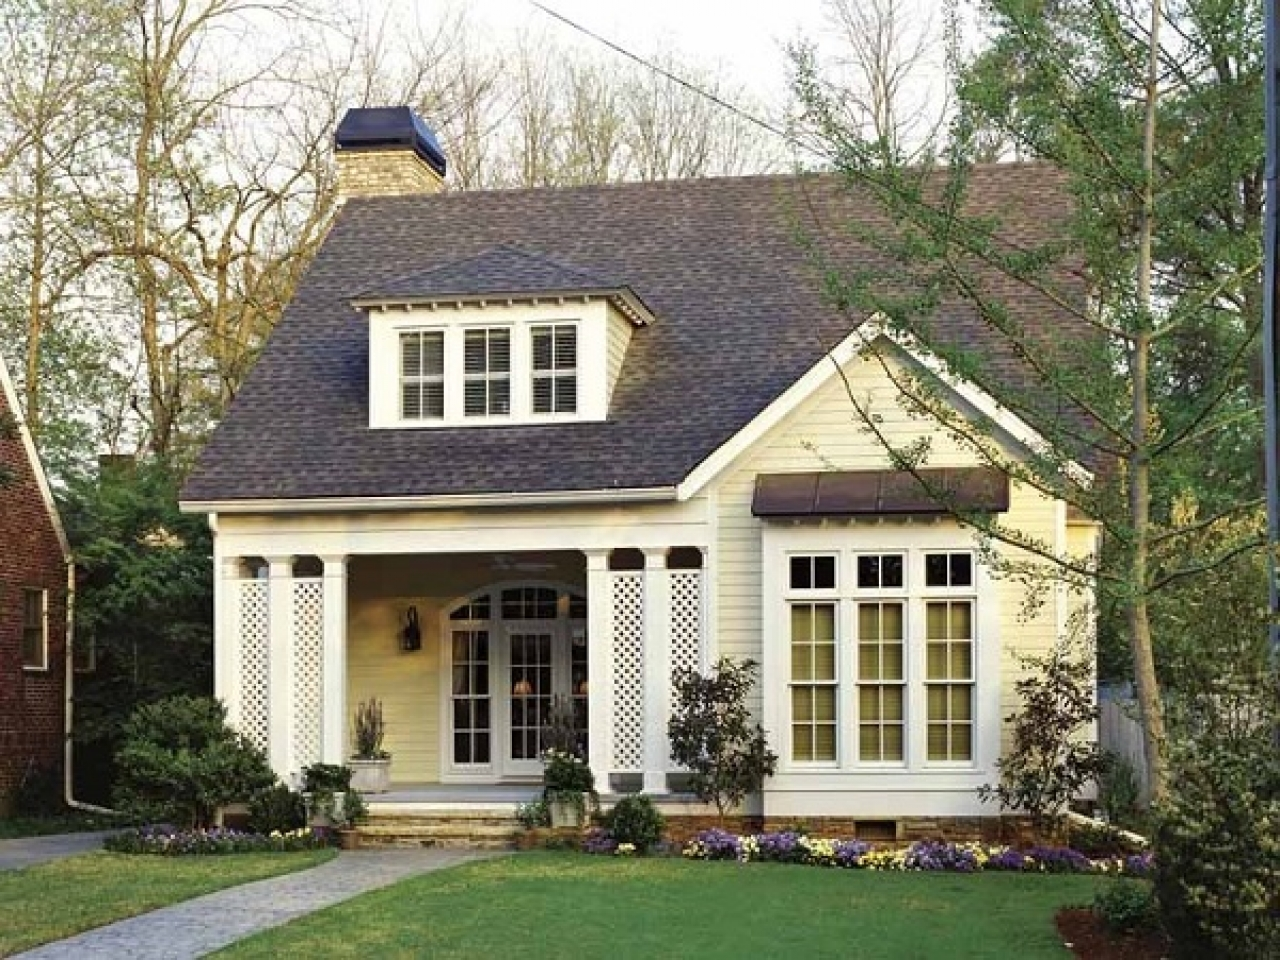 Small cottage house plans small country house plans small for Small house plans images